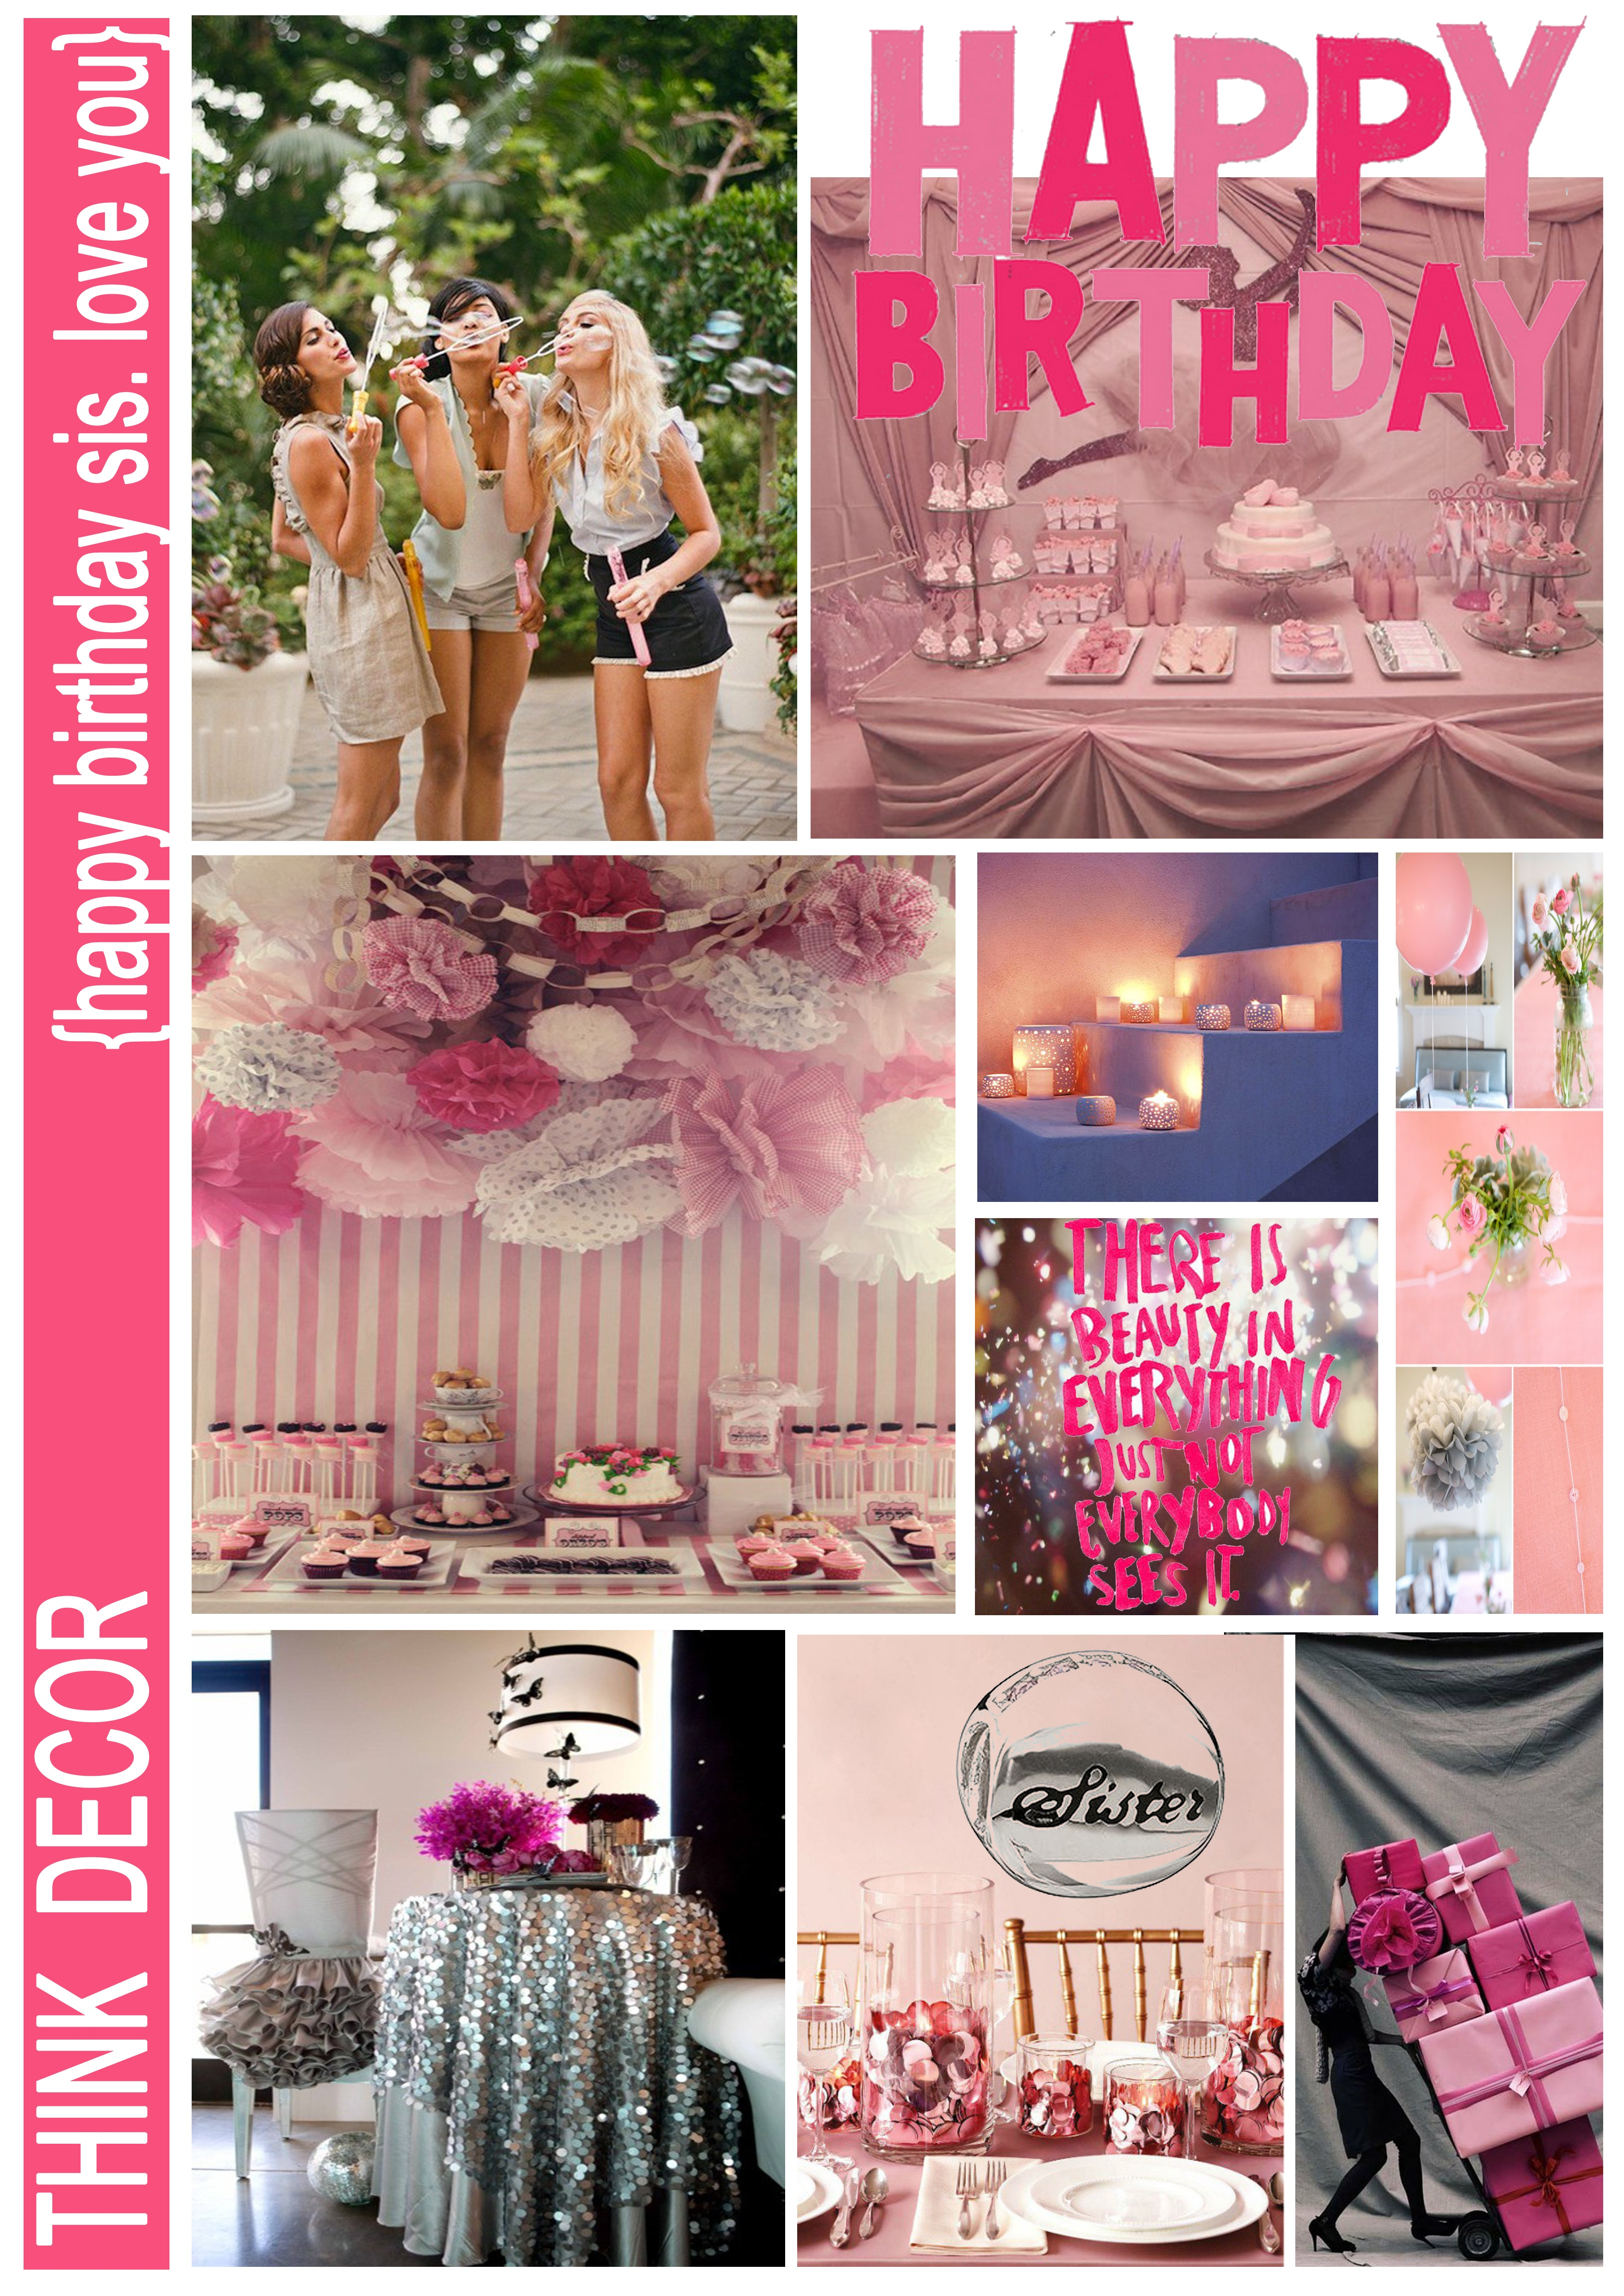 Prepared Some Party Theme Moodboards To Get Some Ideas For Her Party